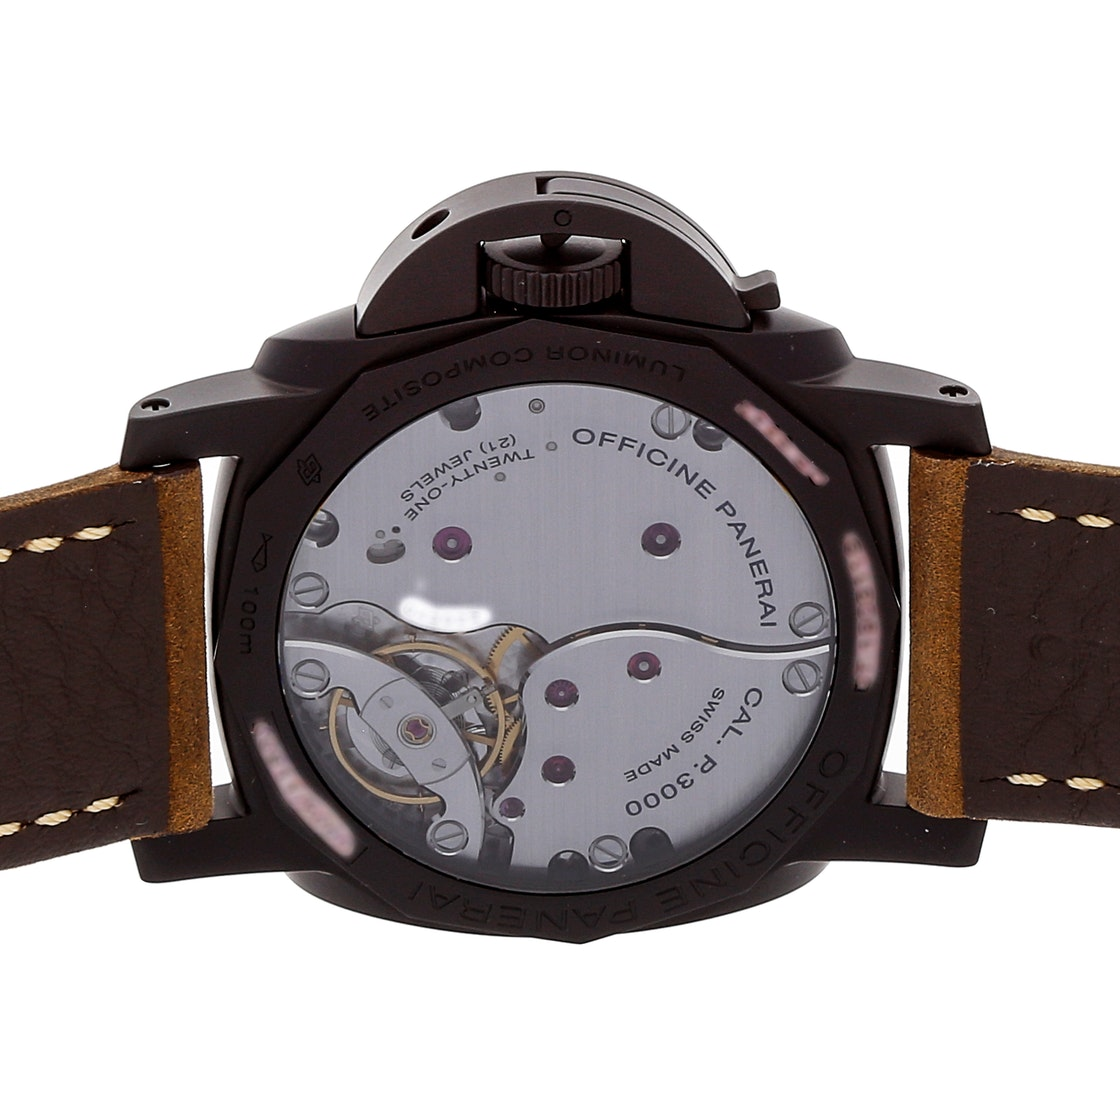 Panerai Luminor 1950 3-Days Composite PAM 375